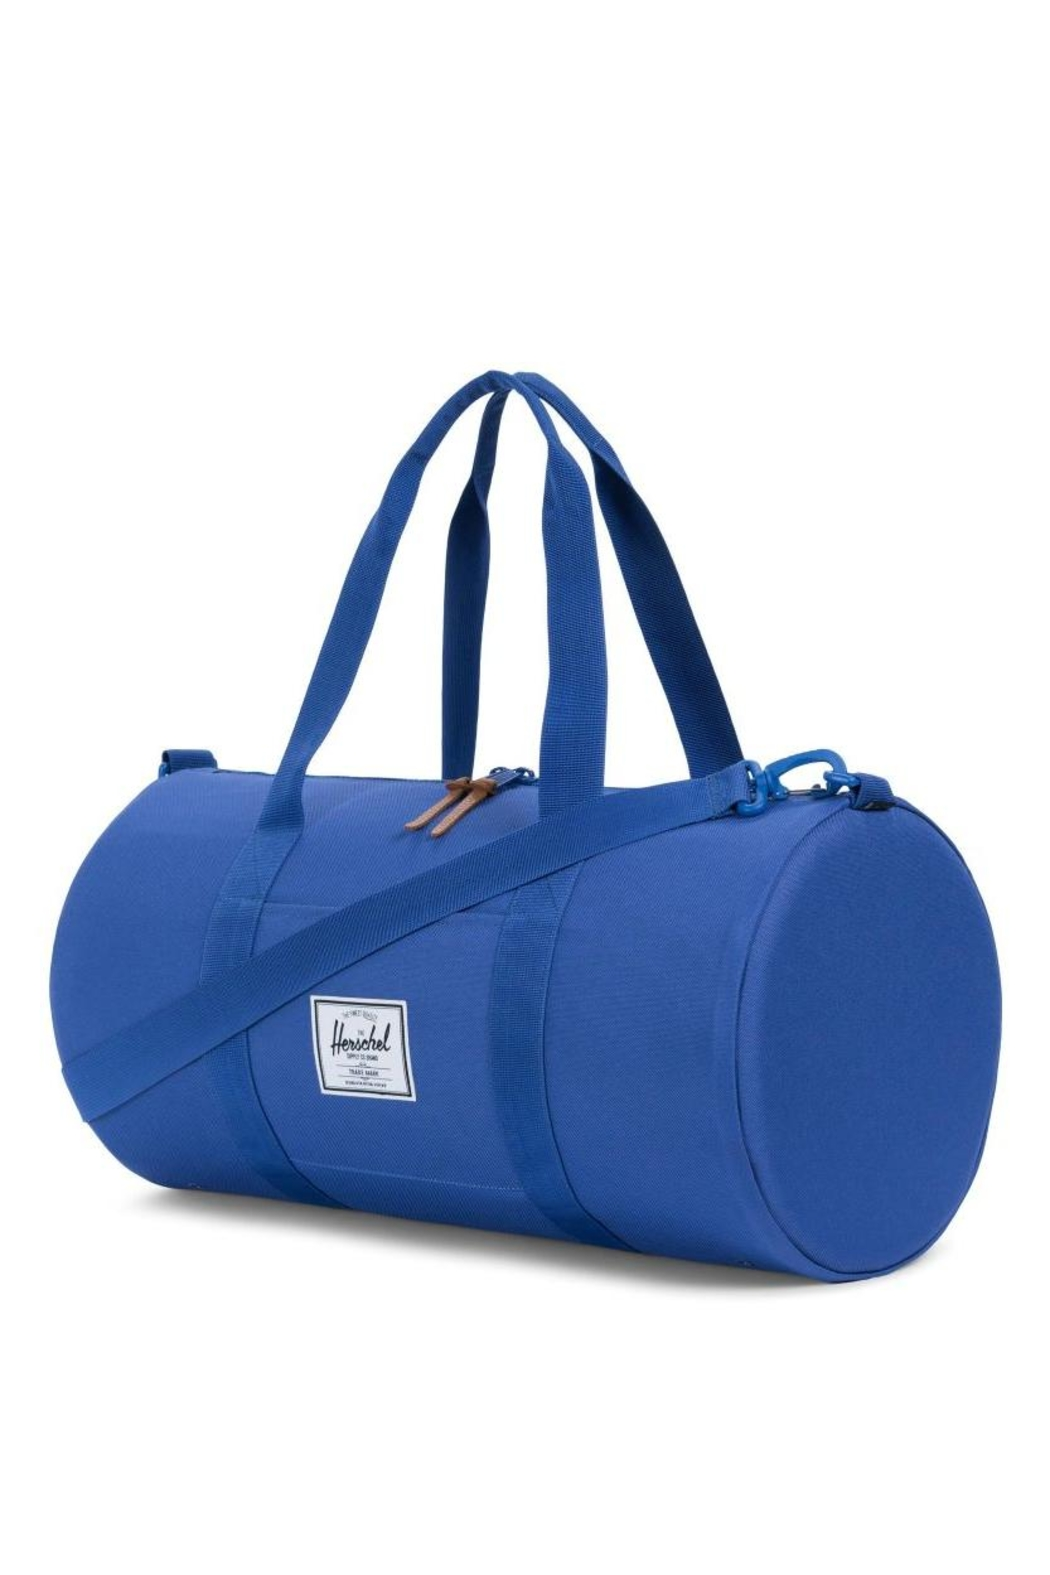 Herschel Supply Co. Mid-Sized Sutton Duffle - Front Full Image